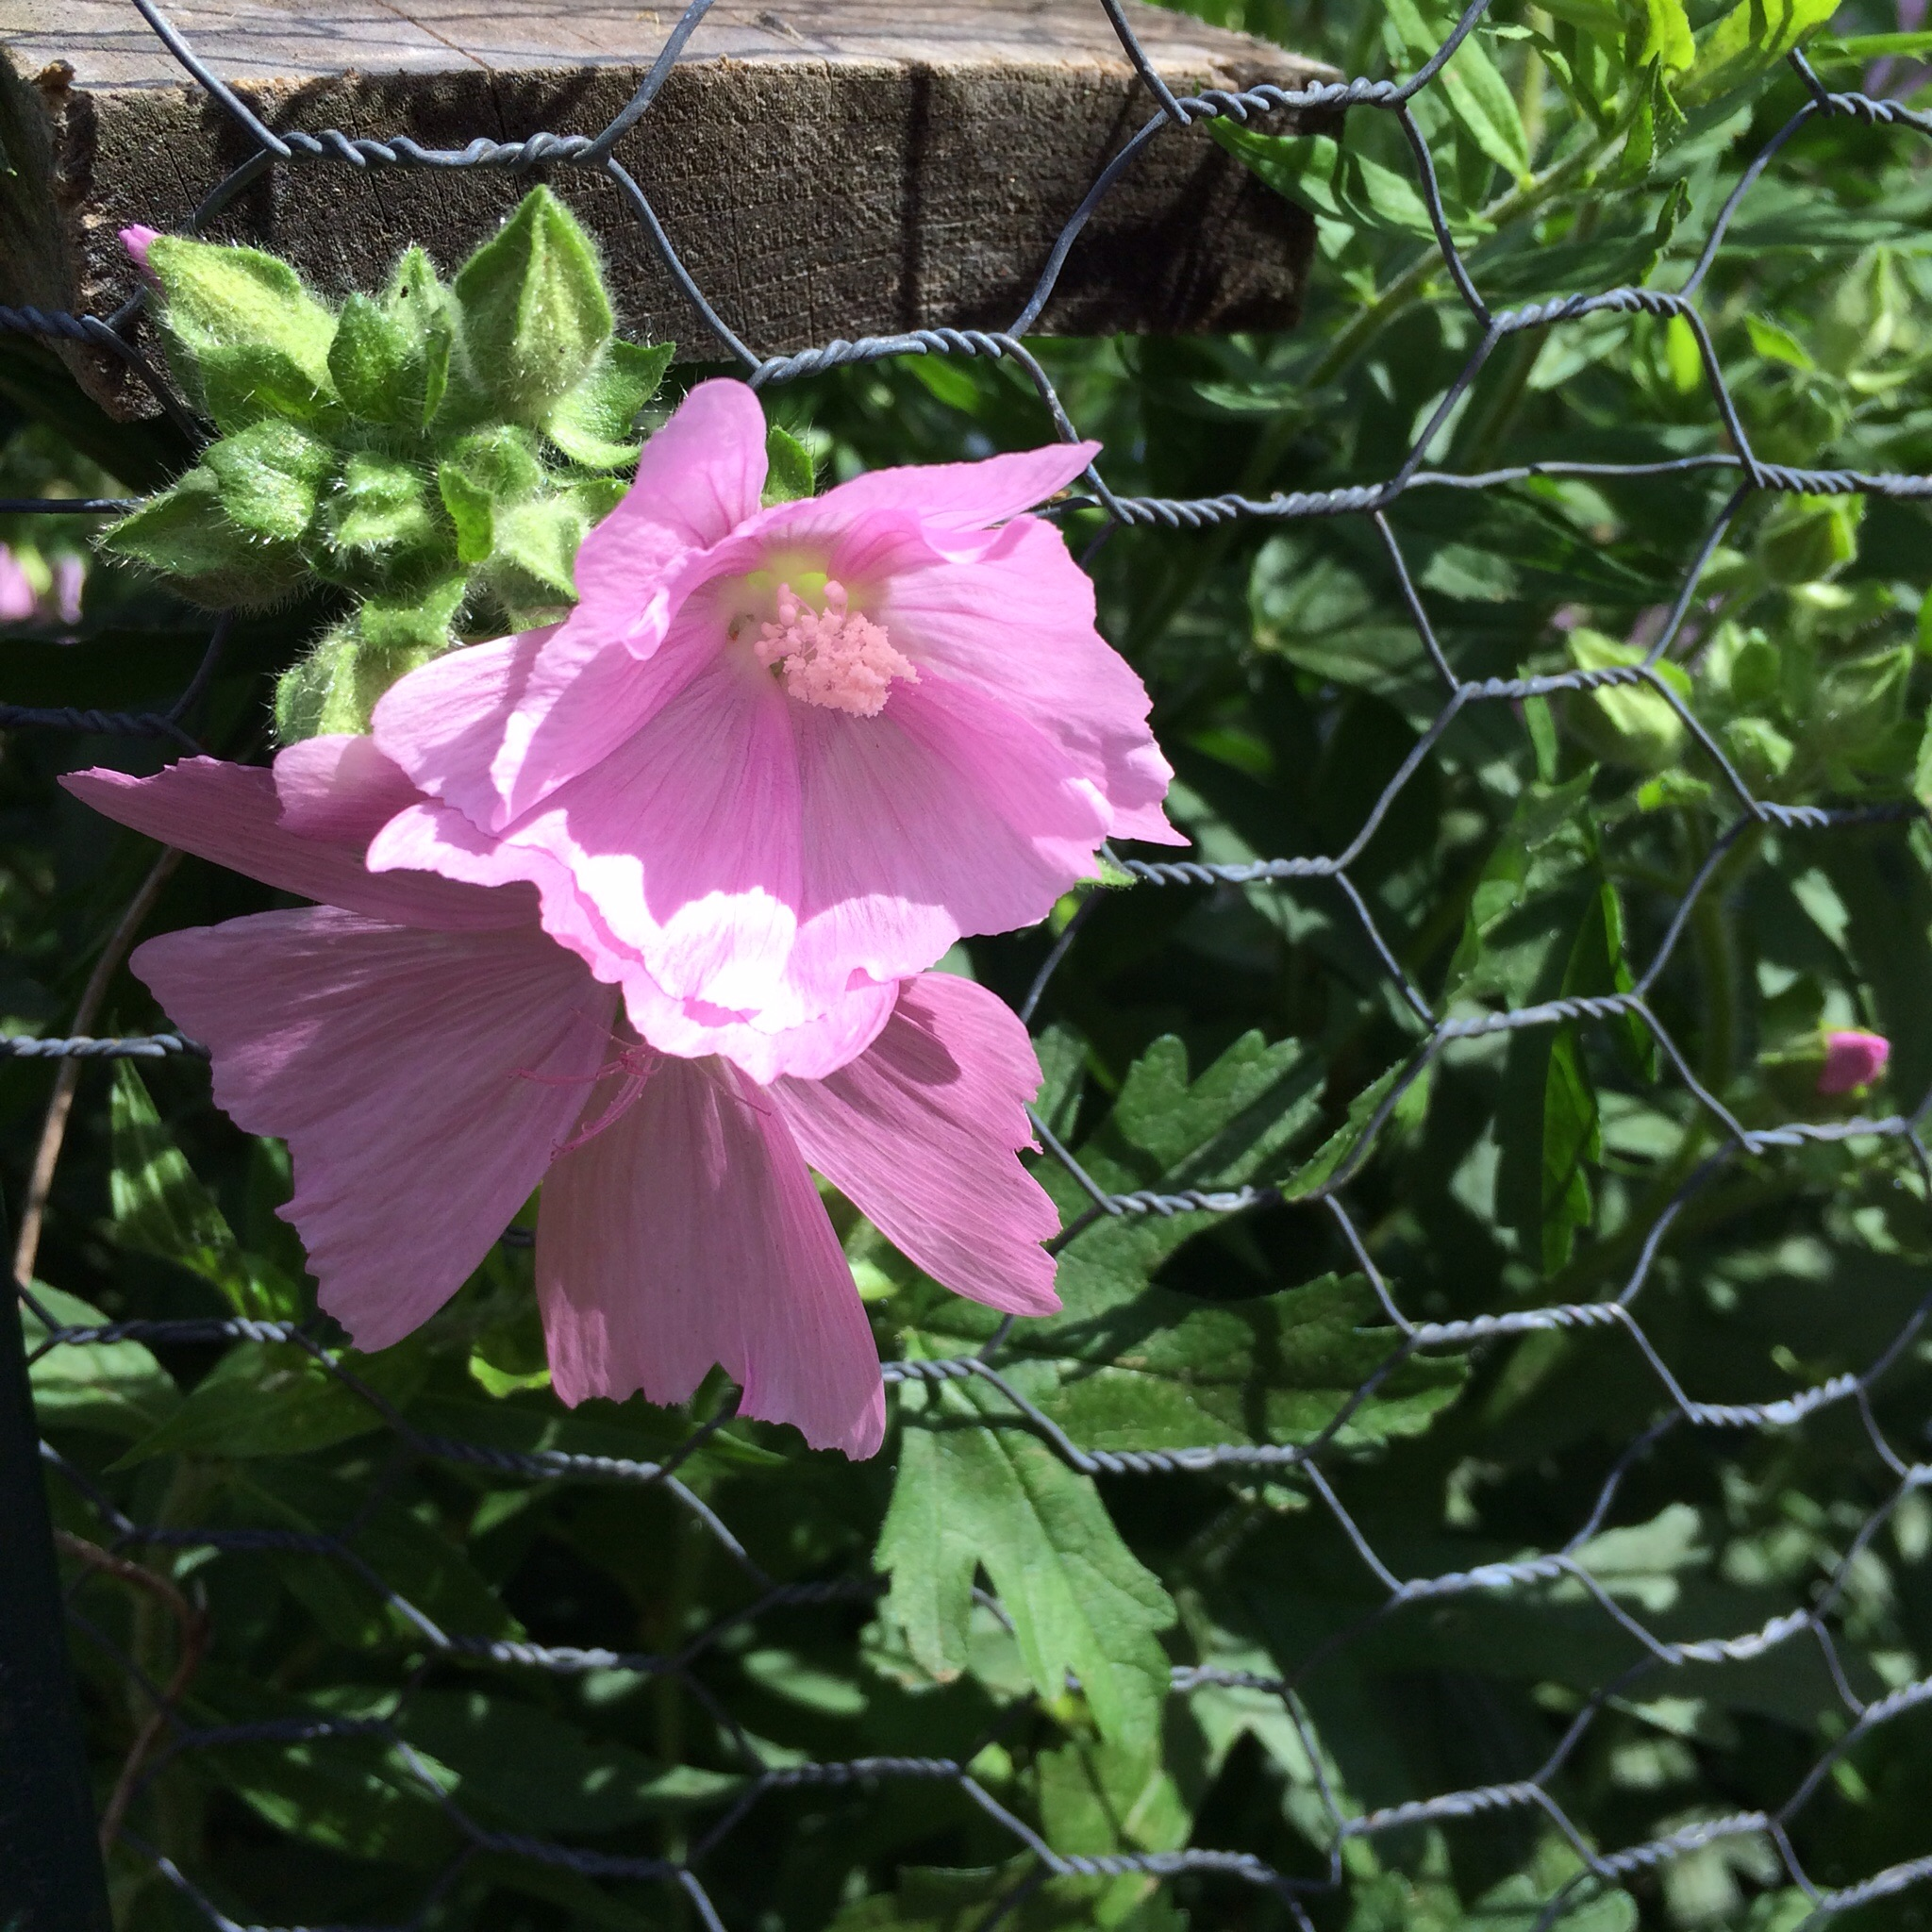 More mallow thrives by the chicken run, its exuberant blossoms pushing through the fence.